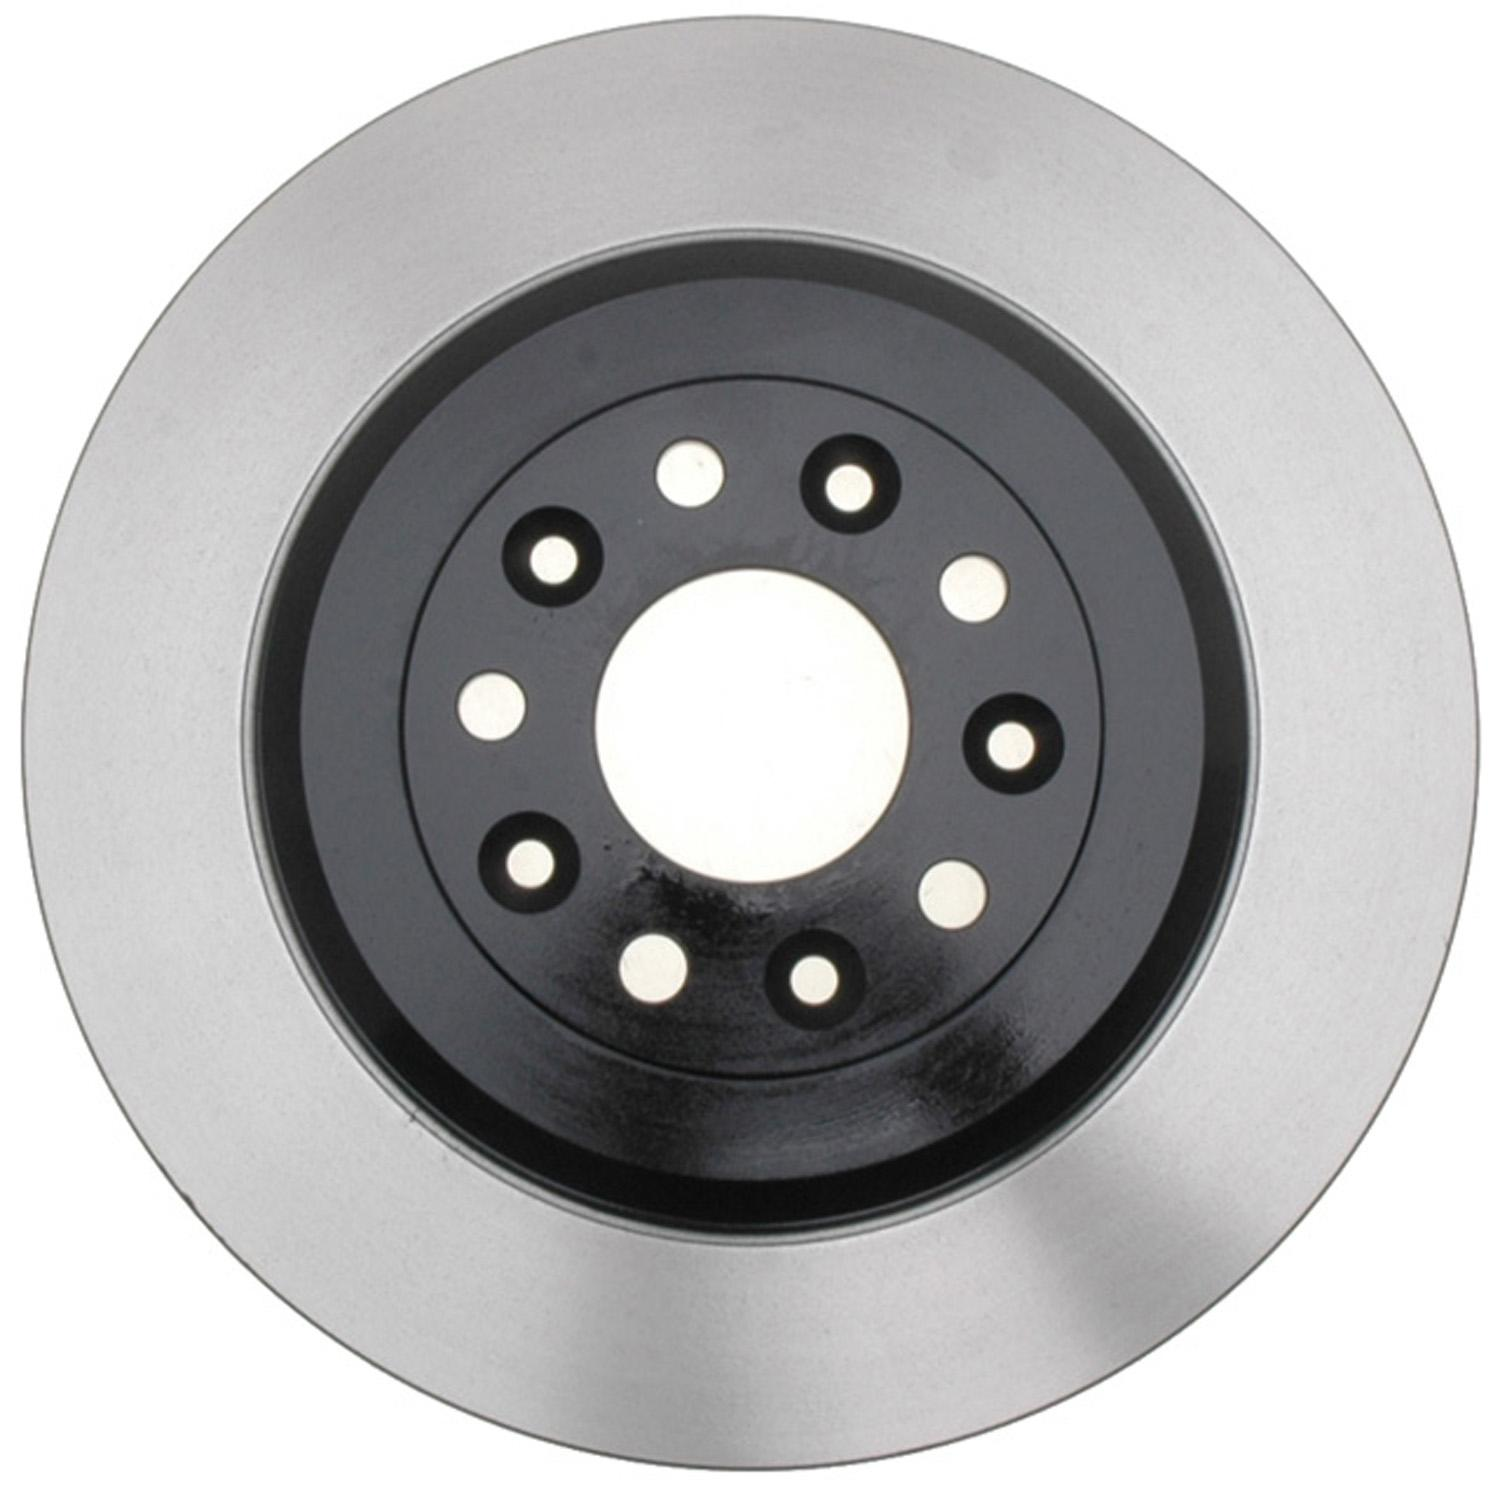 ACDELCO PROFESSIONAL BRAKES - Disc Brake Rotor - ADU 18A2362